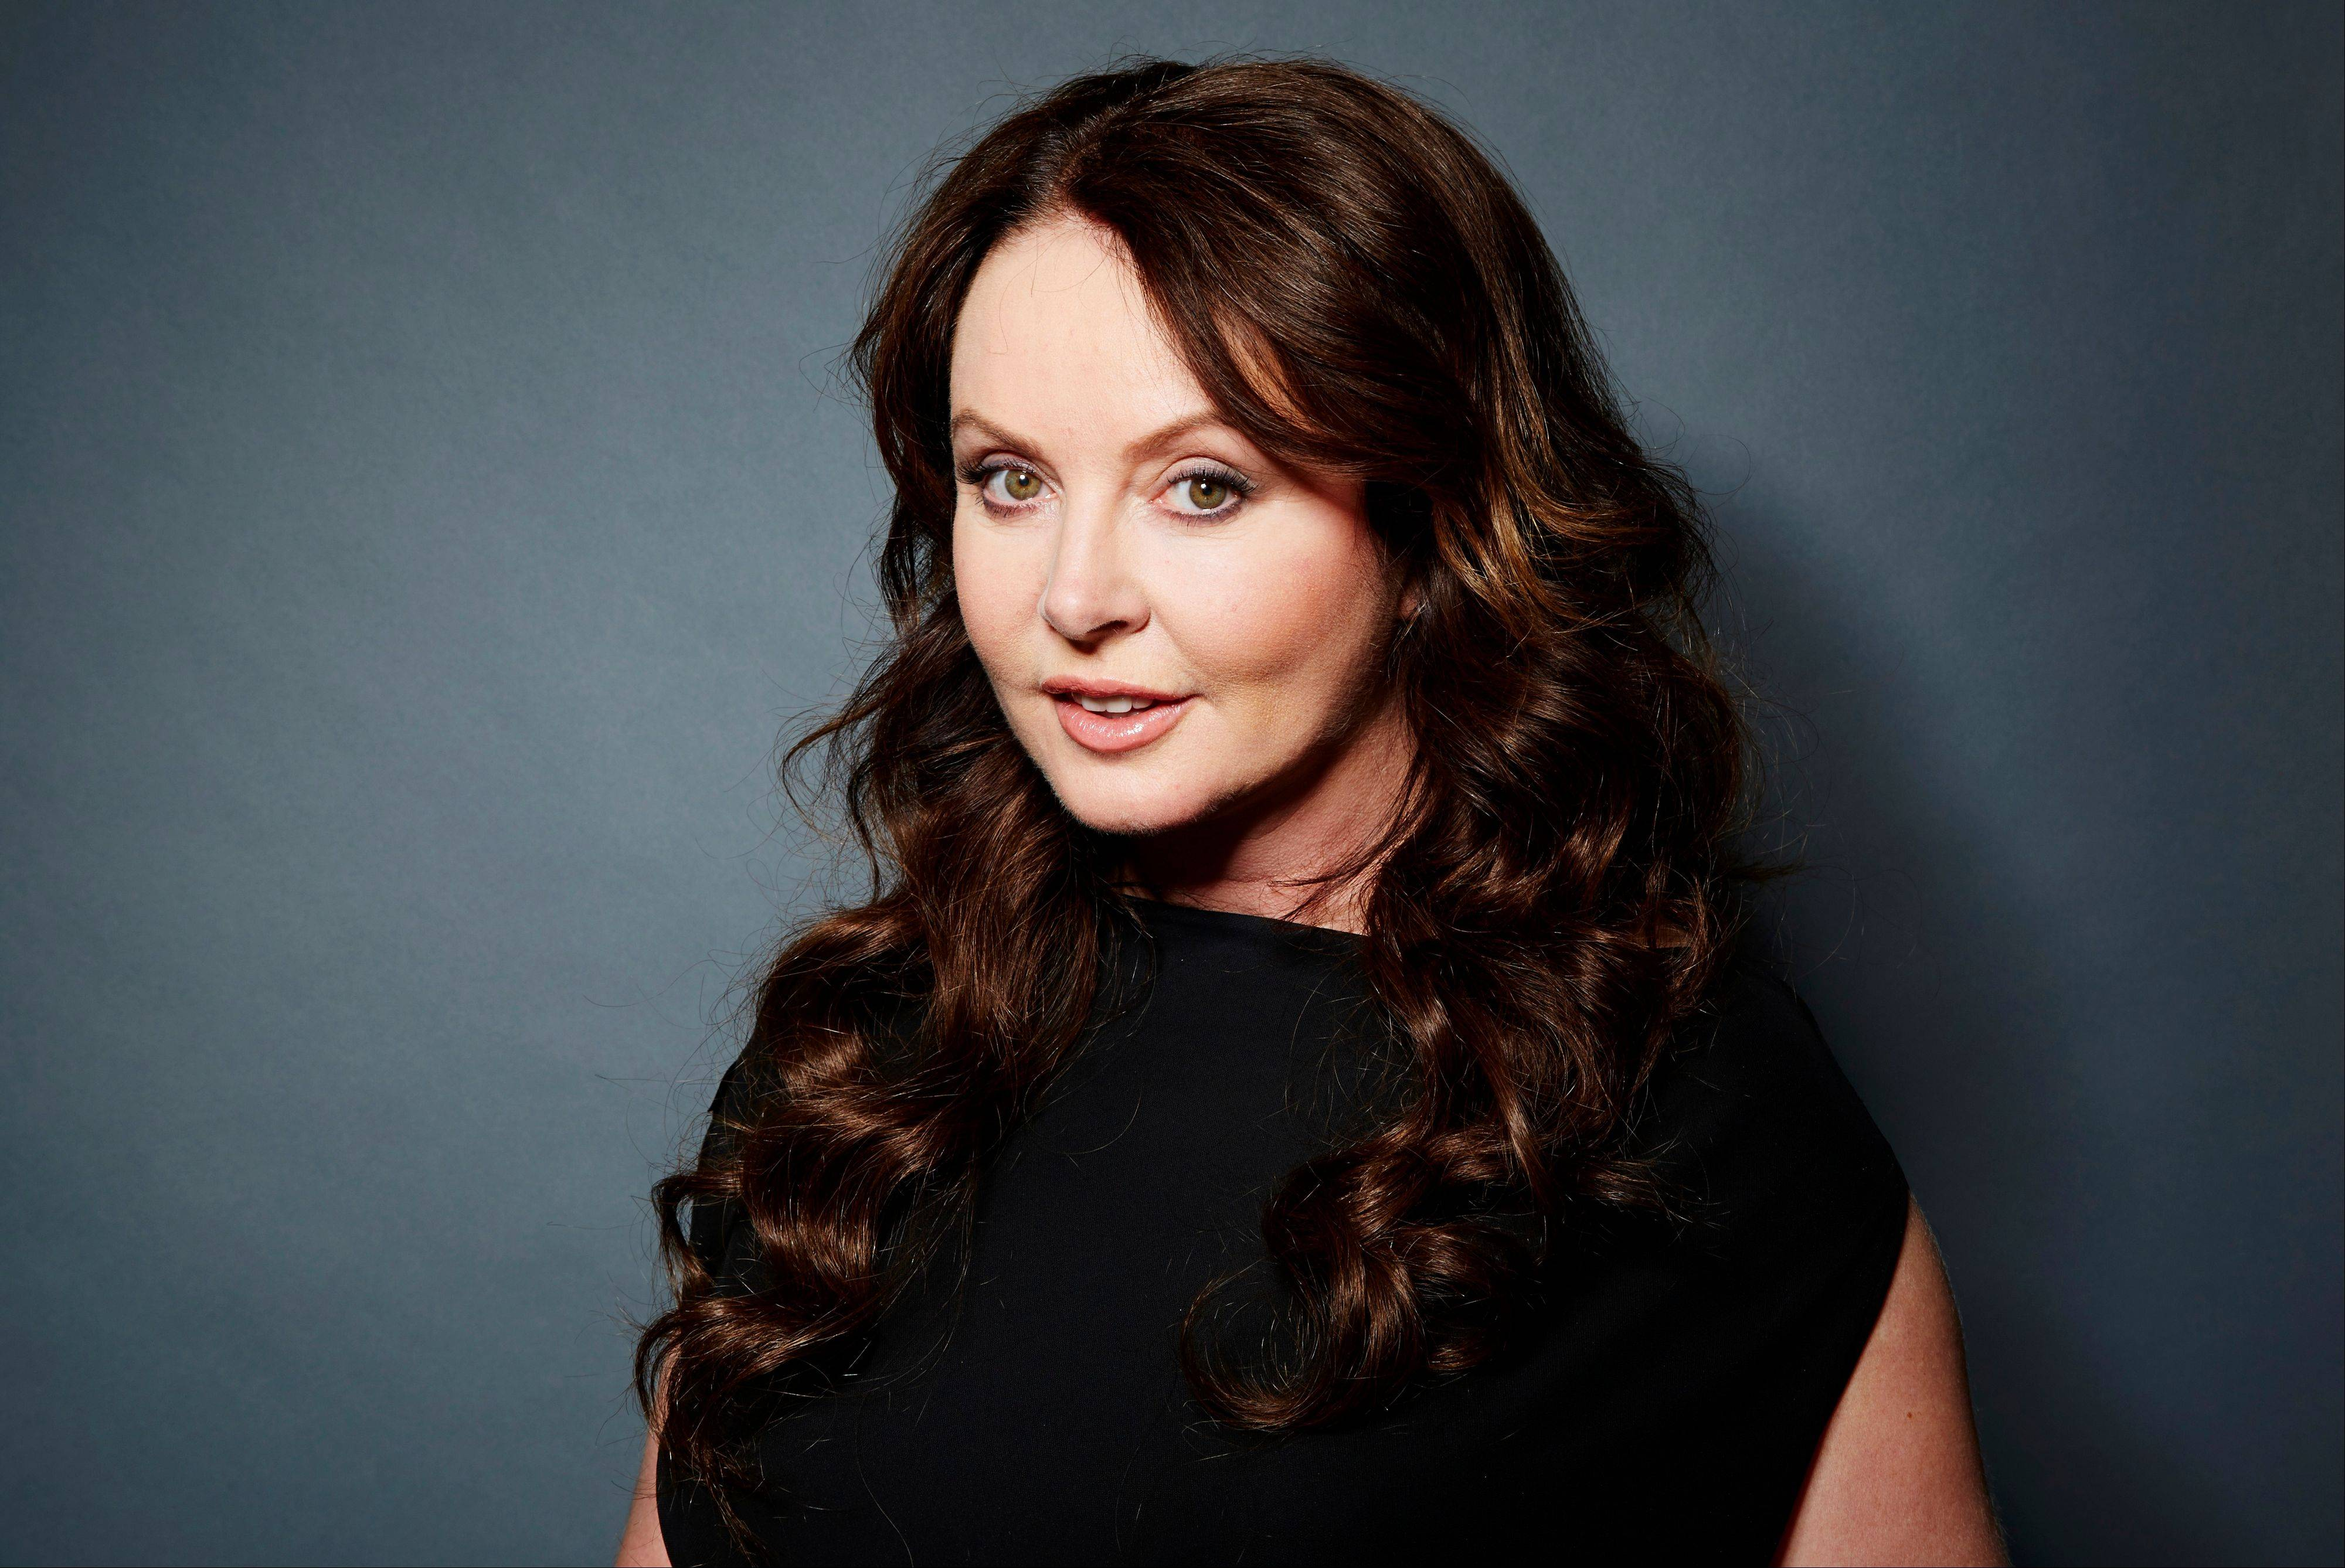 Actress and musician Sarah Brightman plans on becoming the first recording artist to venture into space en route for the International Space Station sometime in the next two years.